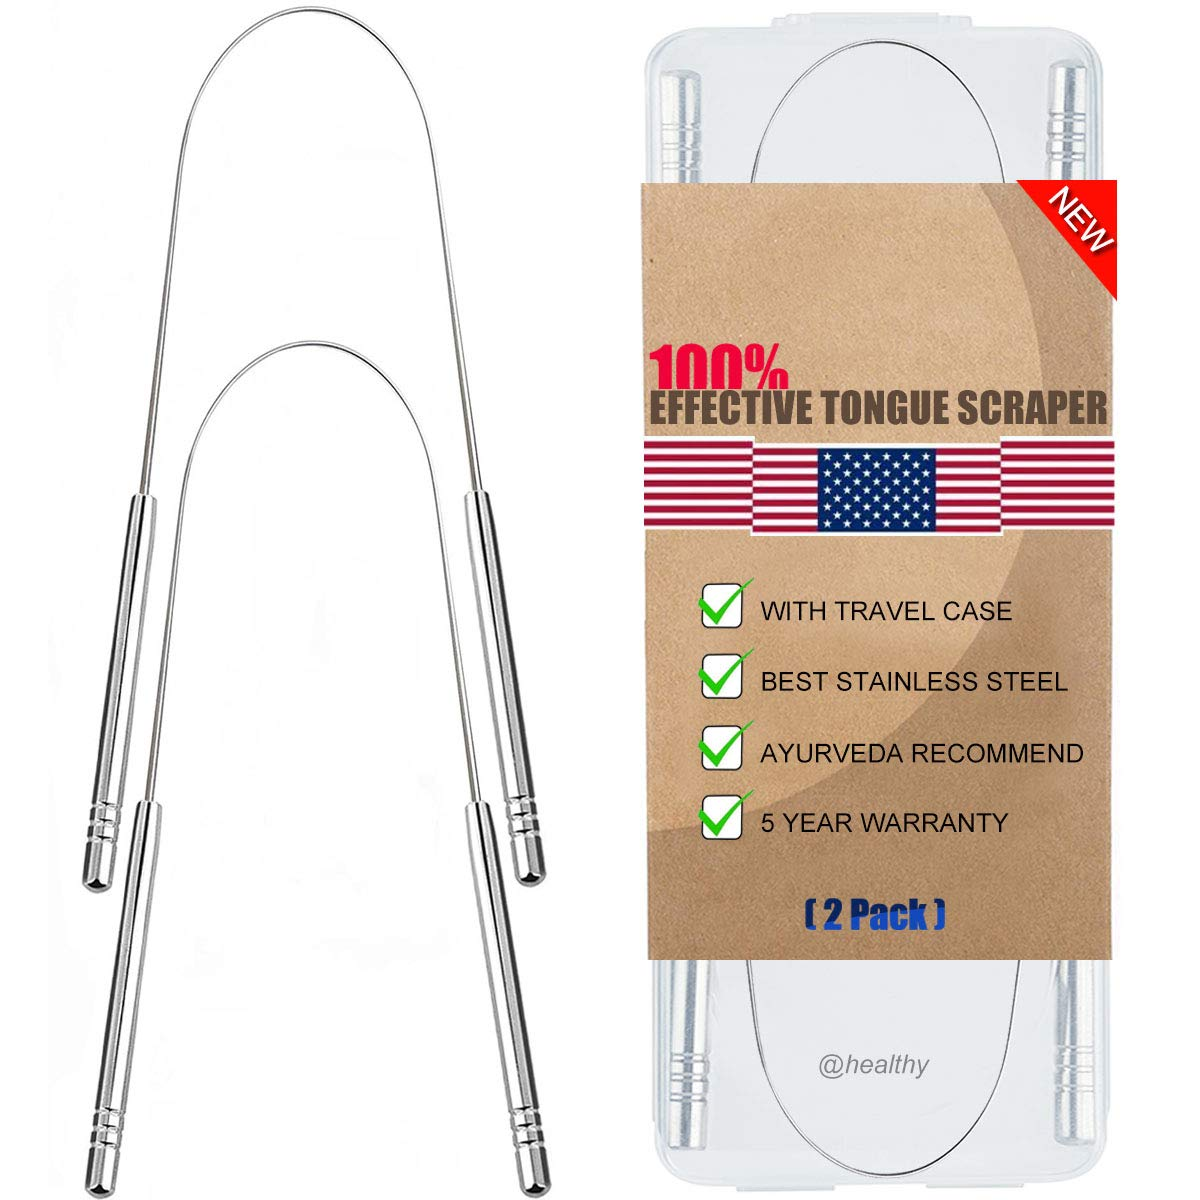 Tongue Scraper, Tongue Cleaner 2 Pack Surgical Stainless Steel Rustproof Tongue Scrapers Effective Reusable Lifetime Scraper for Plaque and Bacteria Removal, Fresh Breath - New